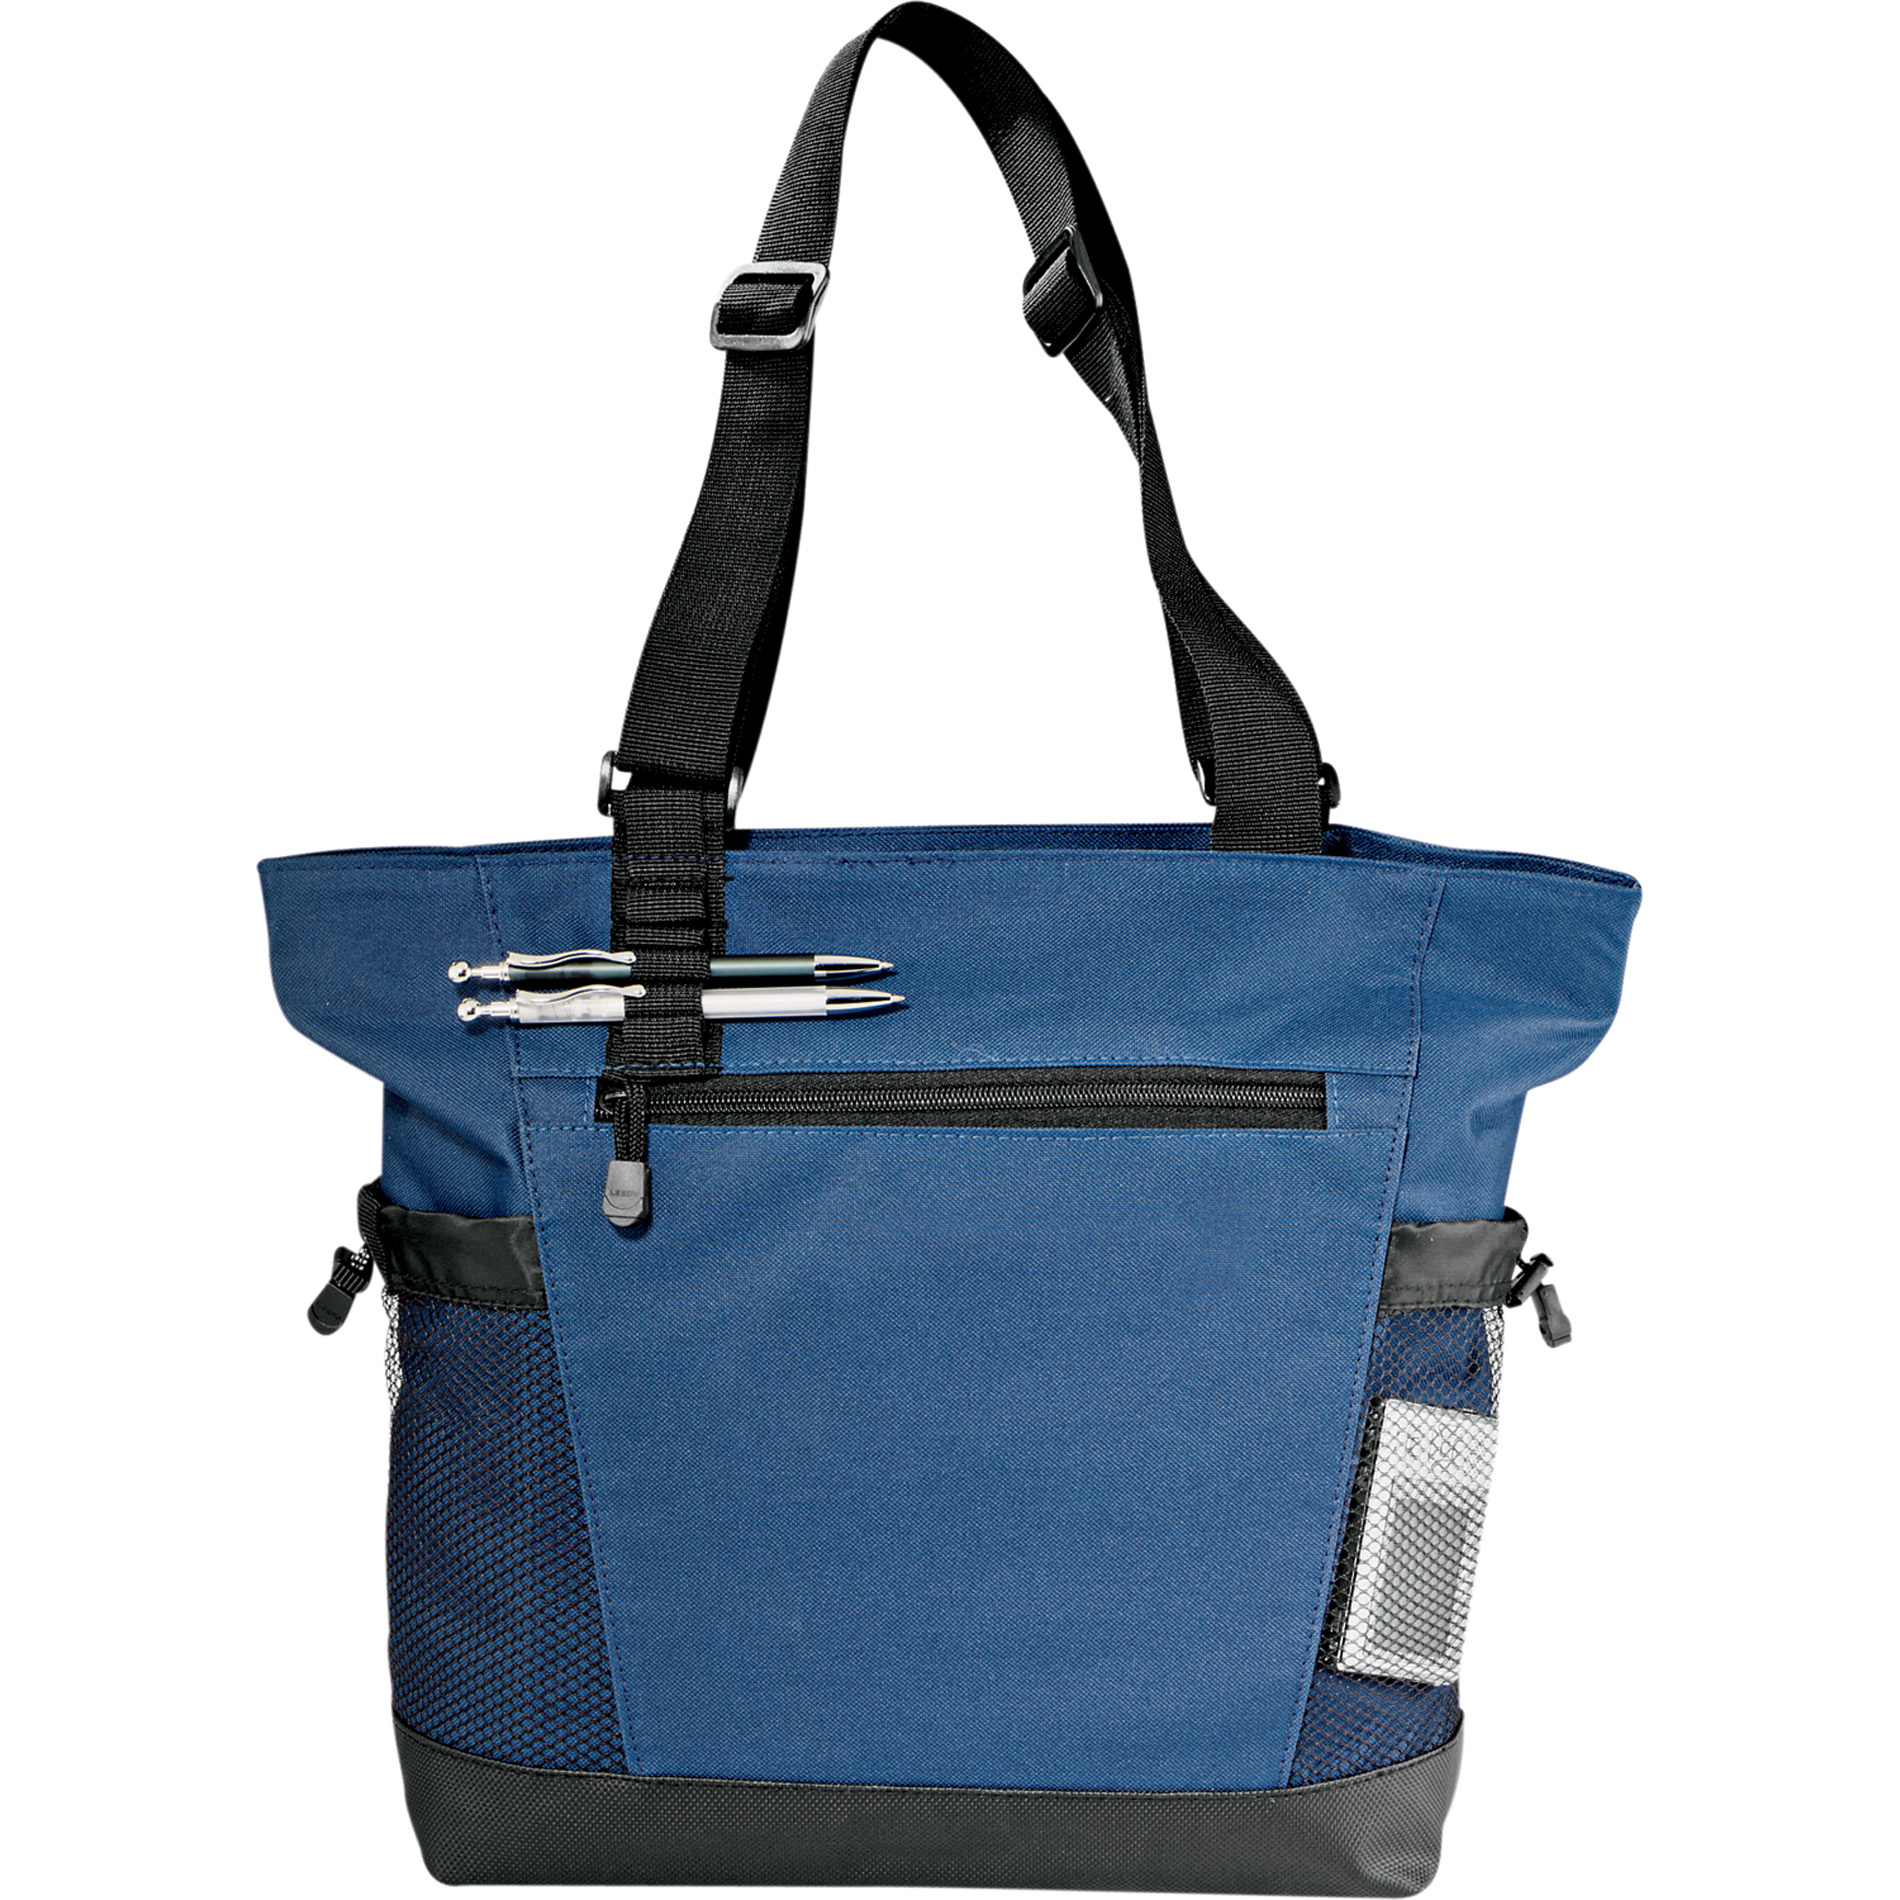 LEEDS 8400-30 - Urban Passage Zippered Travel Business Tote